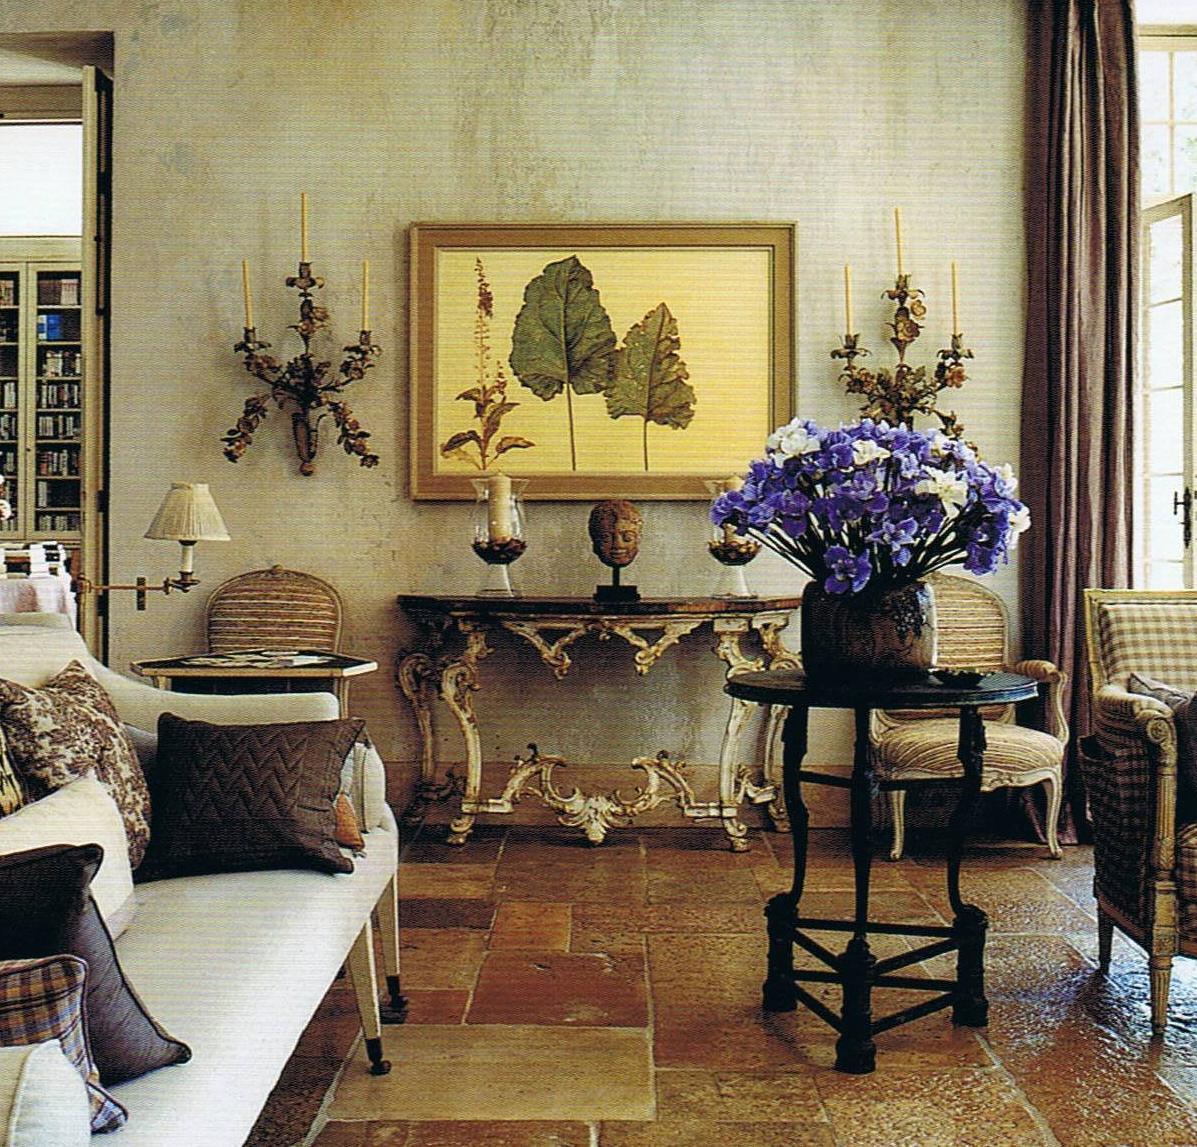 Living Room With Garden: Janet De Botton Voque Living Houses Gardens People.6